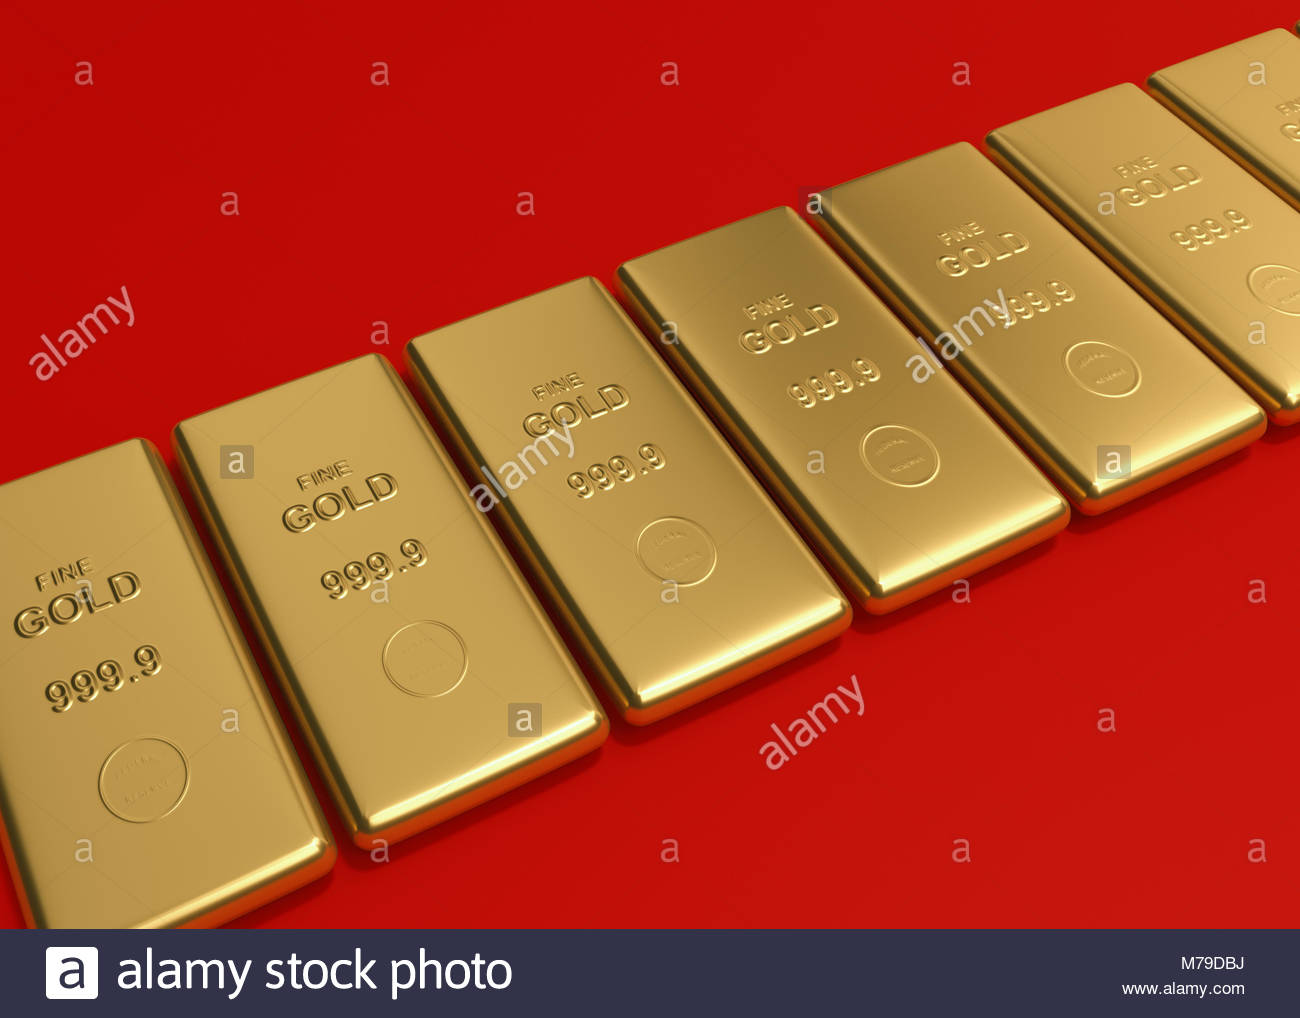 Gold chemical element stock photos gold chemical element stock gold bullion a yellow precious metal the chemical element of atomic number 79 valued buycottarizona Image collections